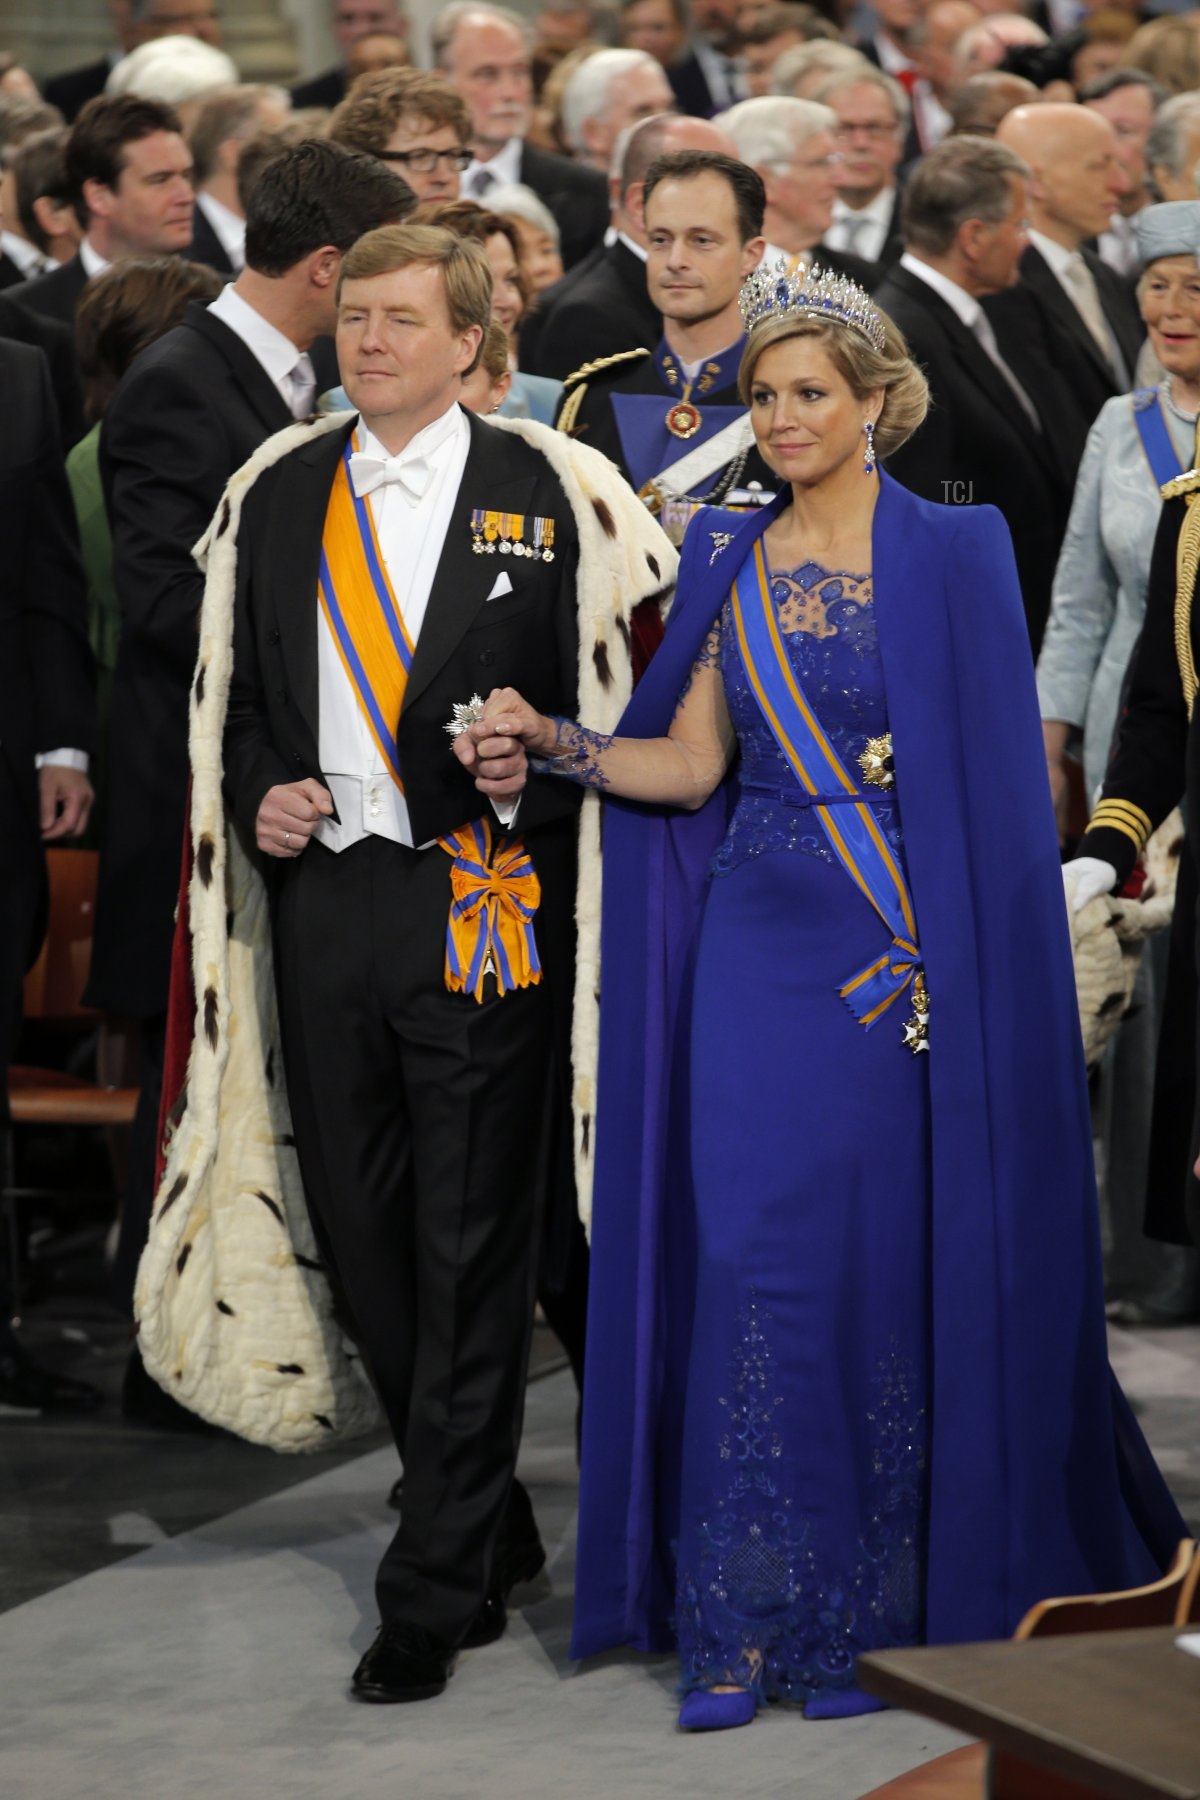 King Willem-Alexander of the Netherlands arrives with his wife Queen Maxima for his inauguration ceremony on April 30, 2013 at Nieuwe Kerk (New Church) in Amsterdam